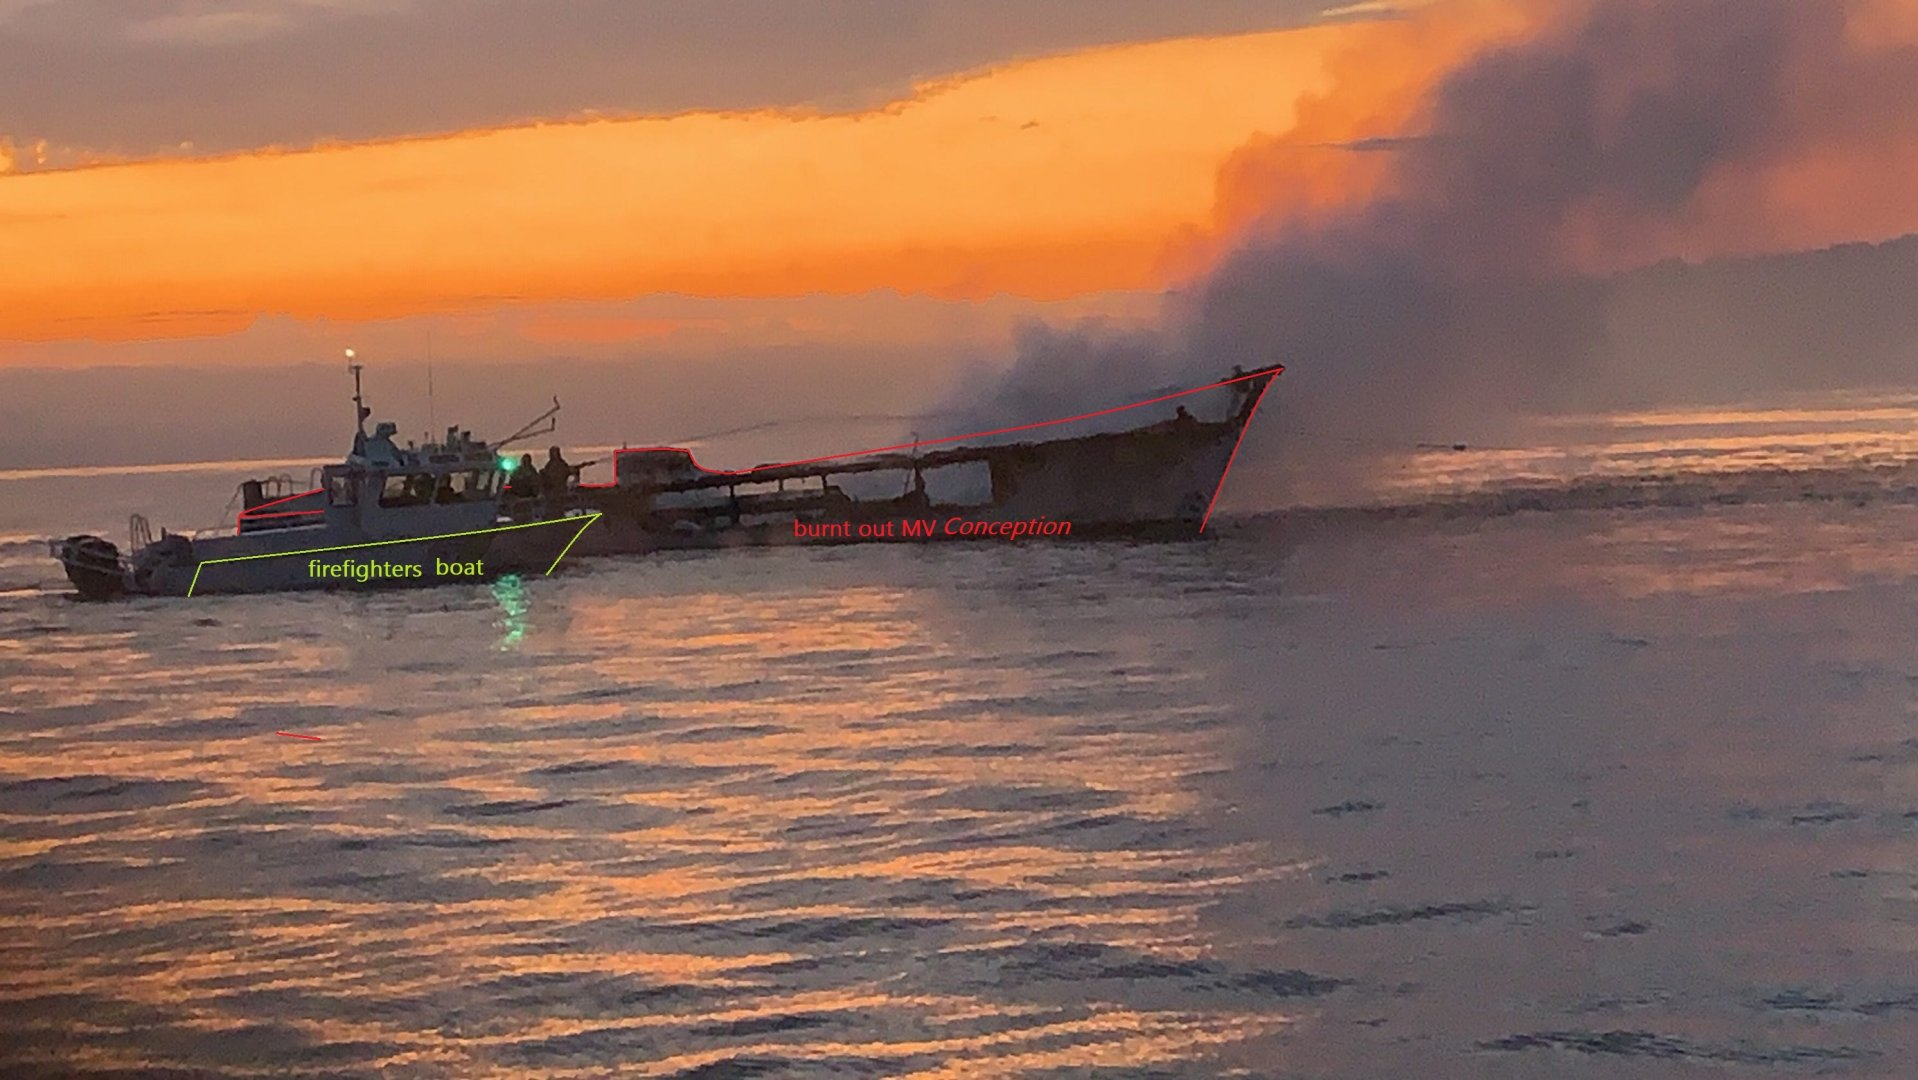 burnt out dive trip boat MV Conception and firefighters on another boat behind it.jpg